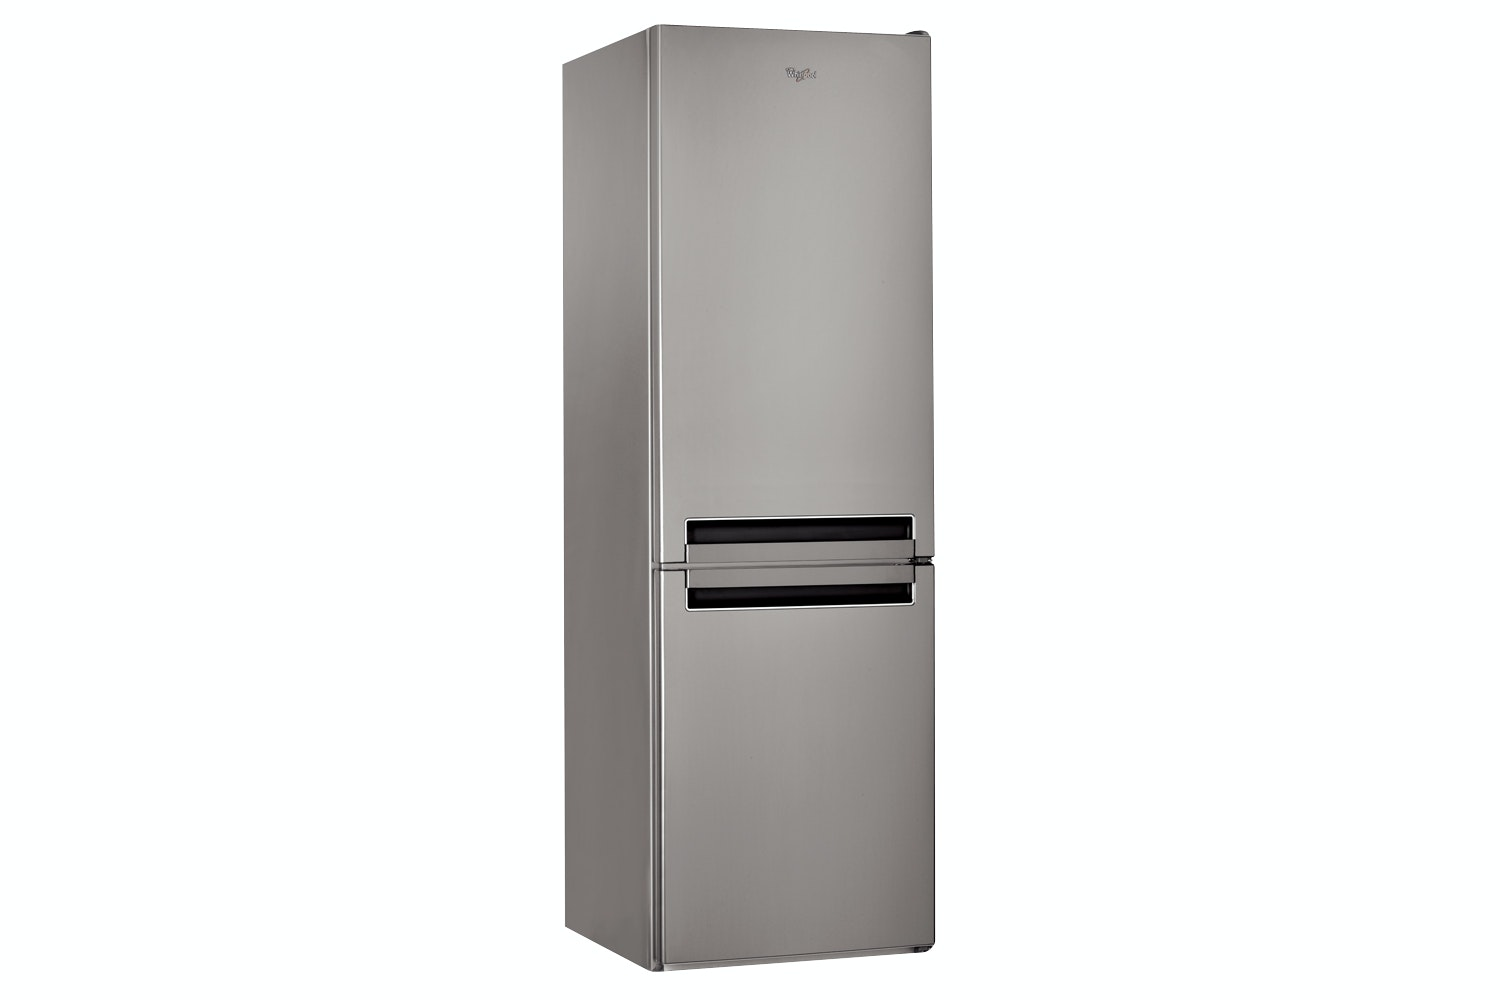 Whirlpool 60cm Stainless Steel Fridge Freezer | BLF8121OX